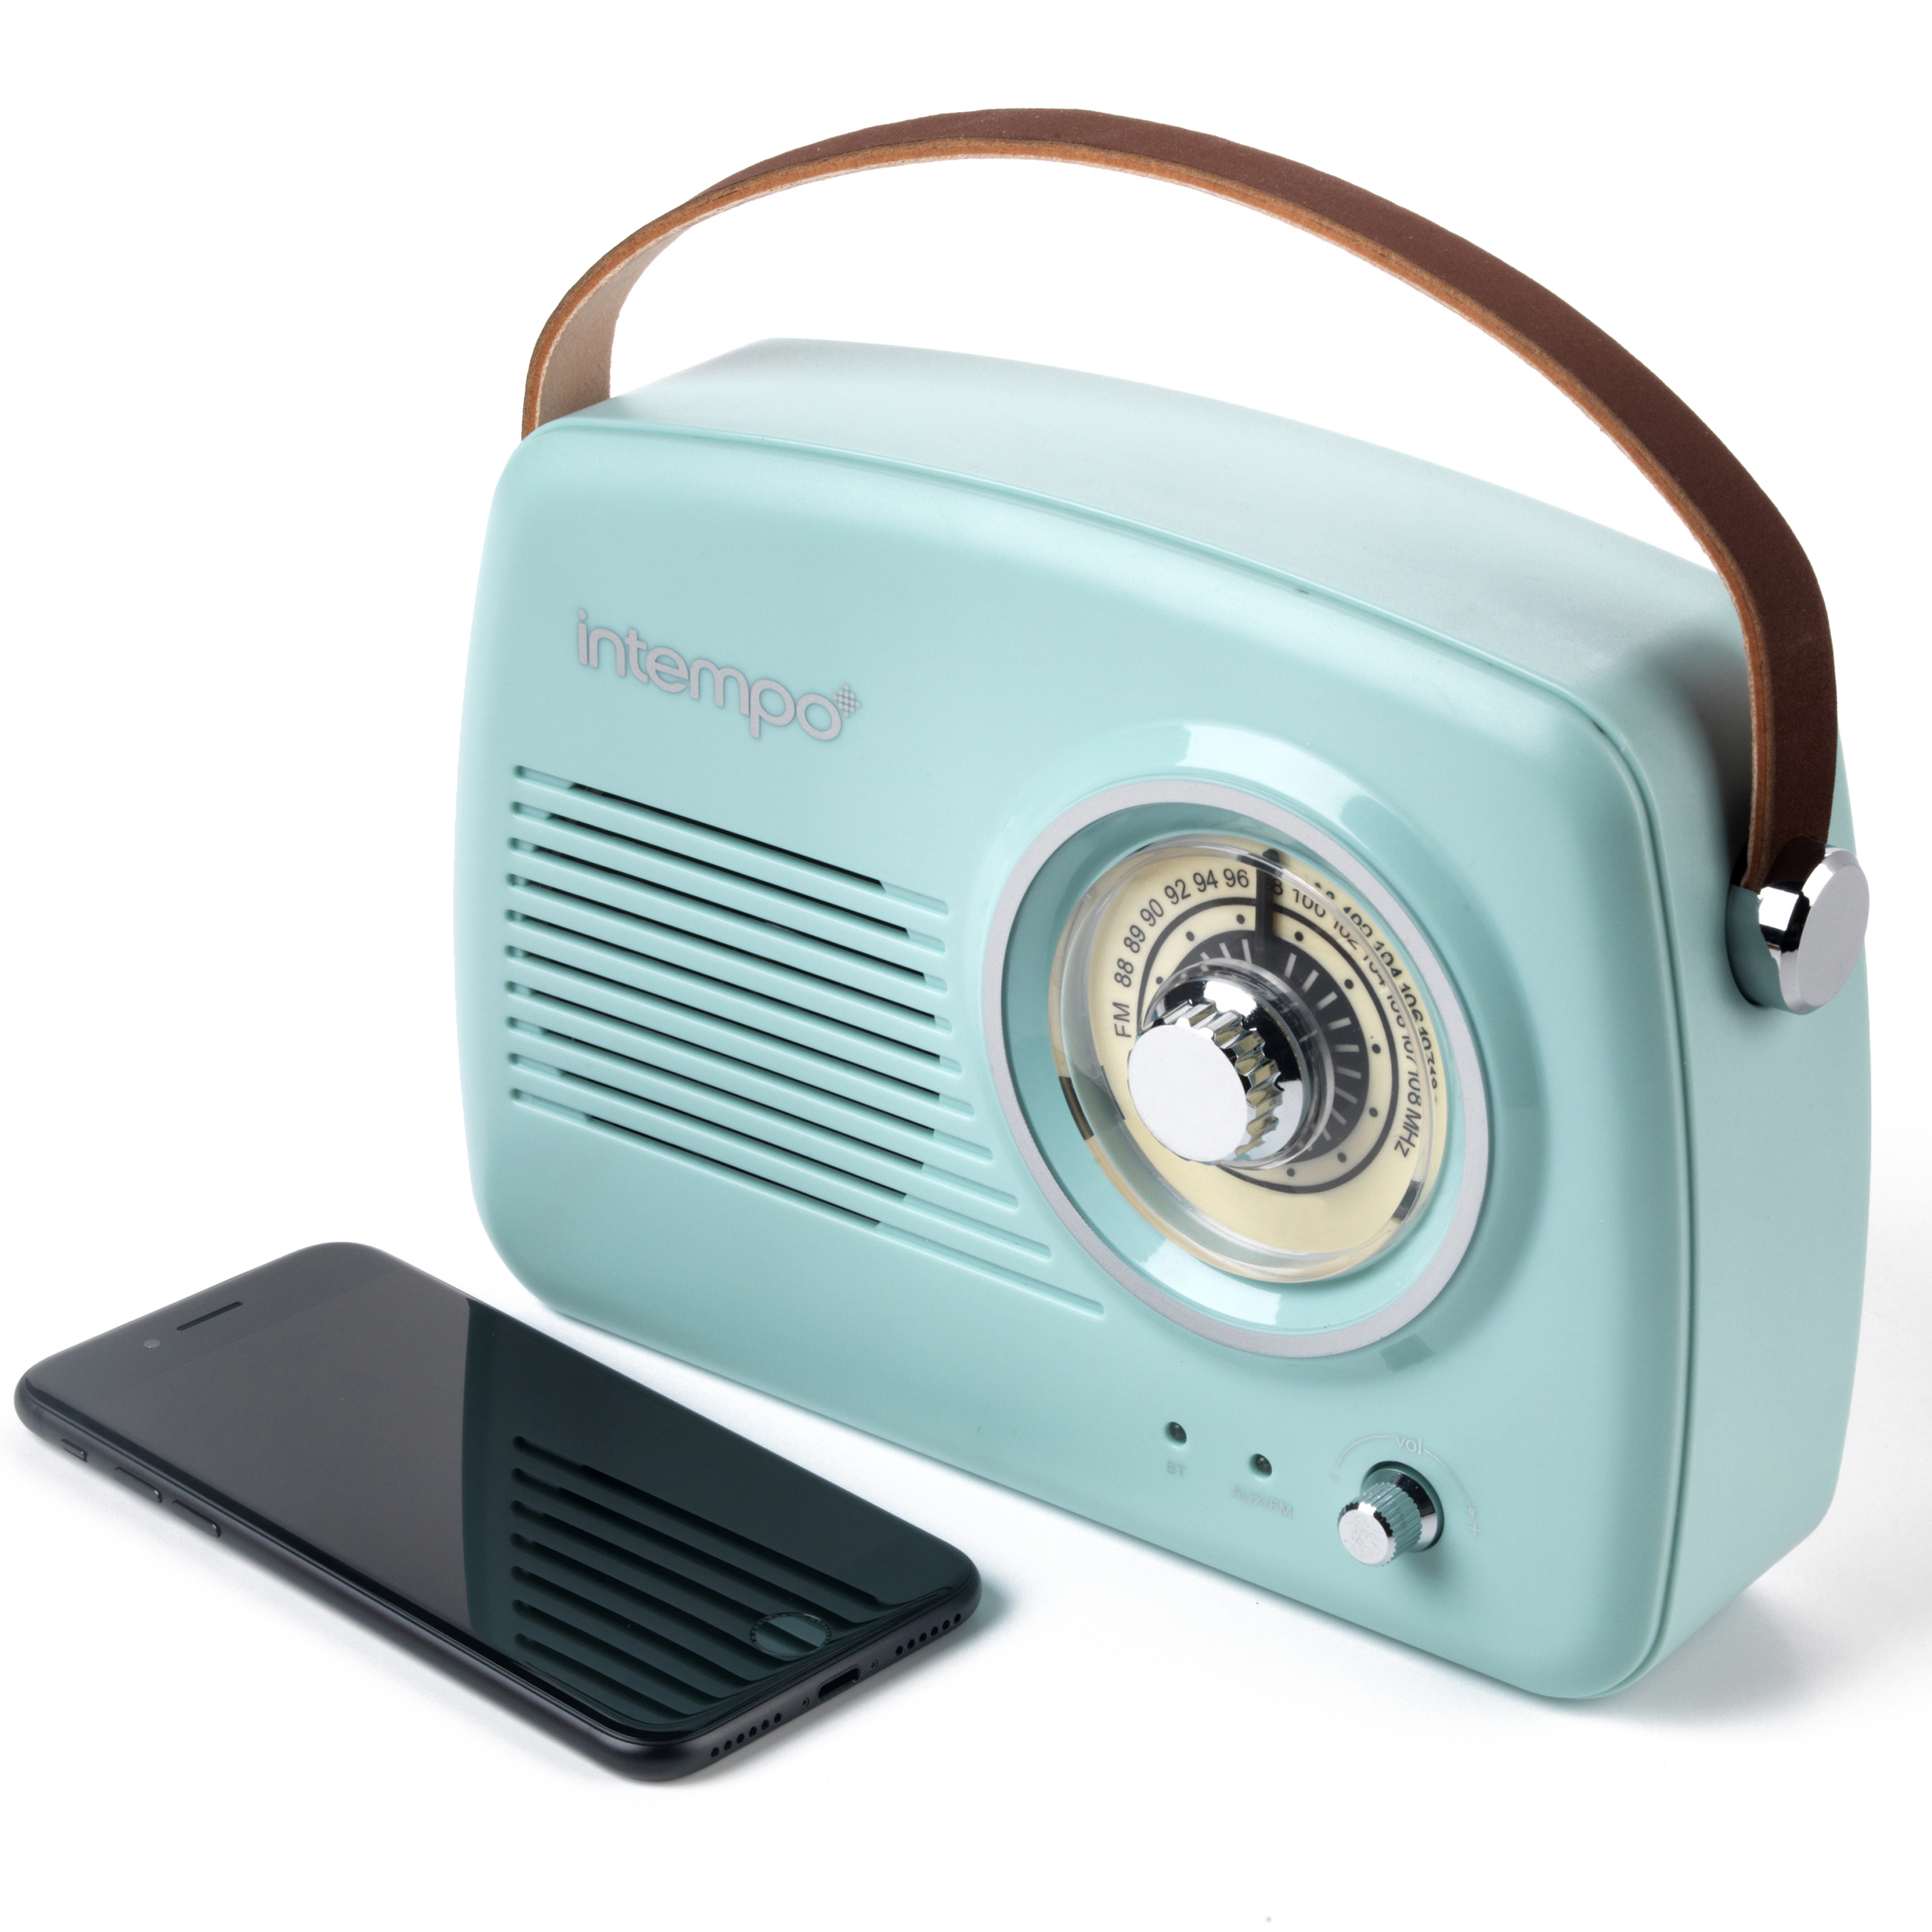 Intempo Bluetooth Speaker with FM Radio and Leather Carry Strap, 8 cm,  Duck Egg Blue